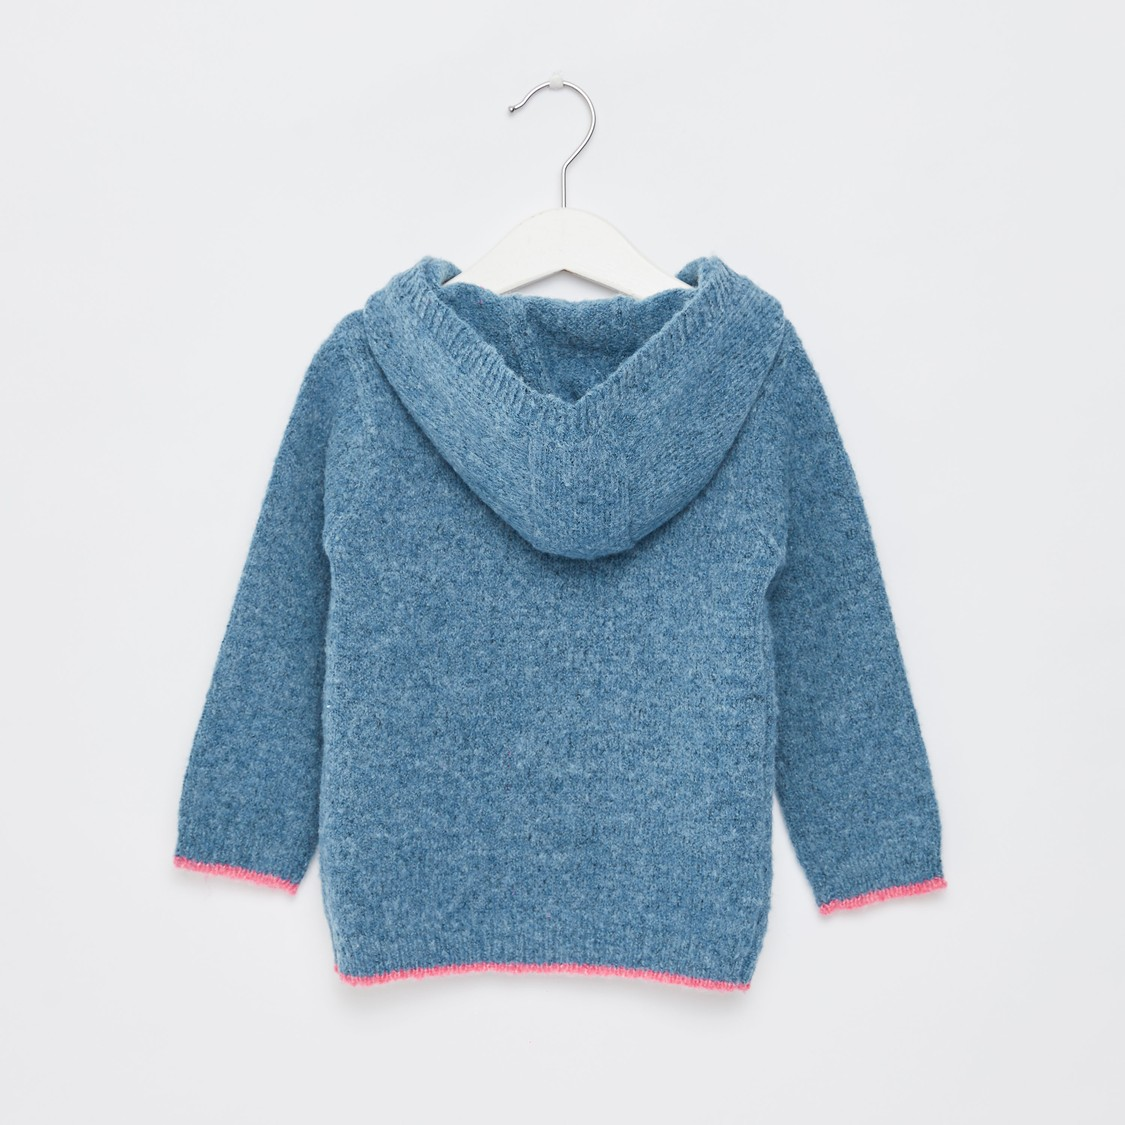 Textured Sweater with Hooded Neck and Long Sleeves